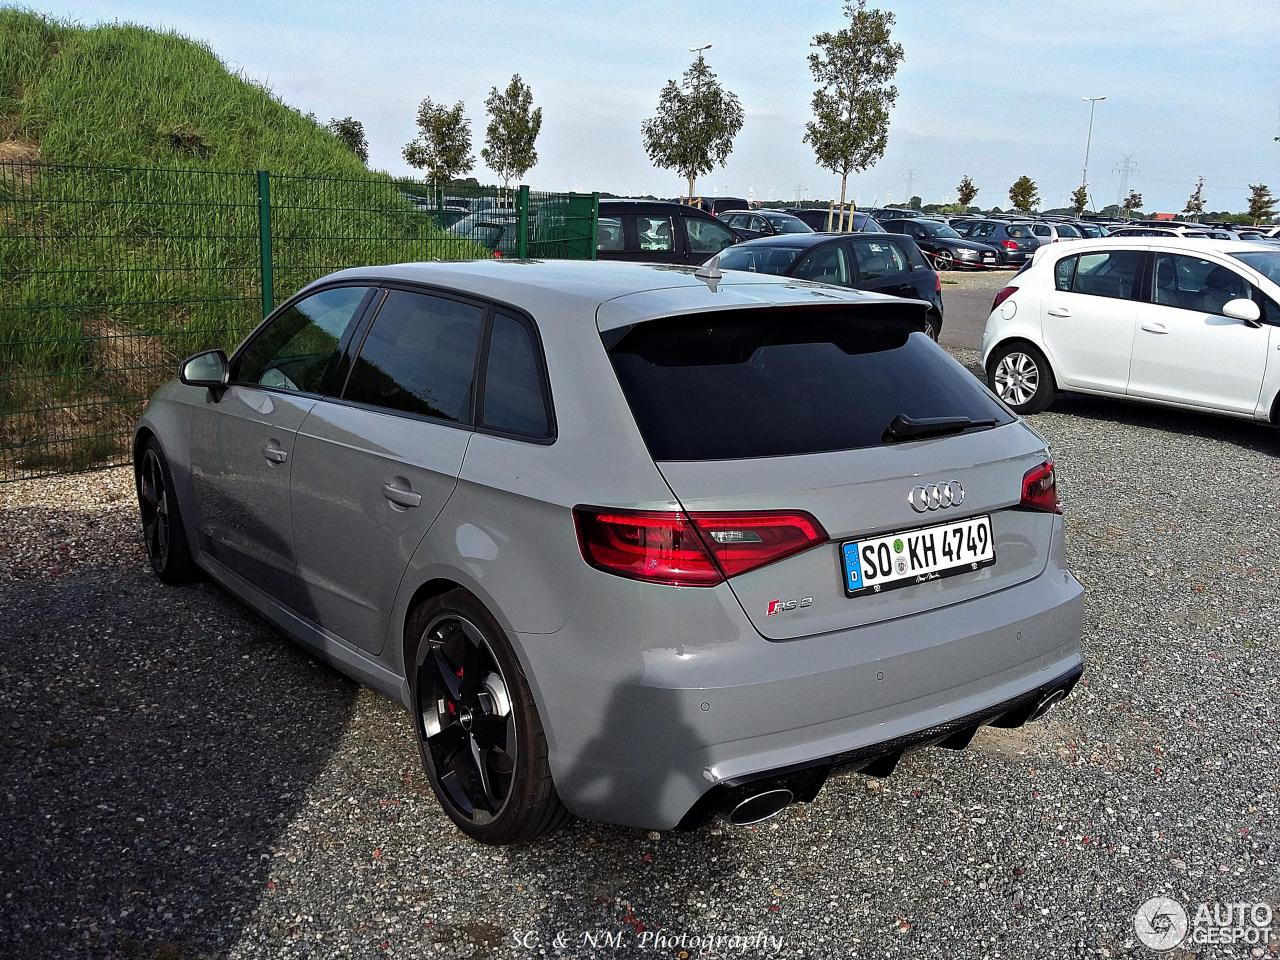 Kompak lasse in addition Wallpaper 01 moreover Used Audi Rs3 Rs3 25 Tfsi Sportback S Tronic Quattro 5dr Nav Peterborough 4005343 additionally 14 besides 2016 Audi S3. on audi rs3 sportback 2016